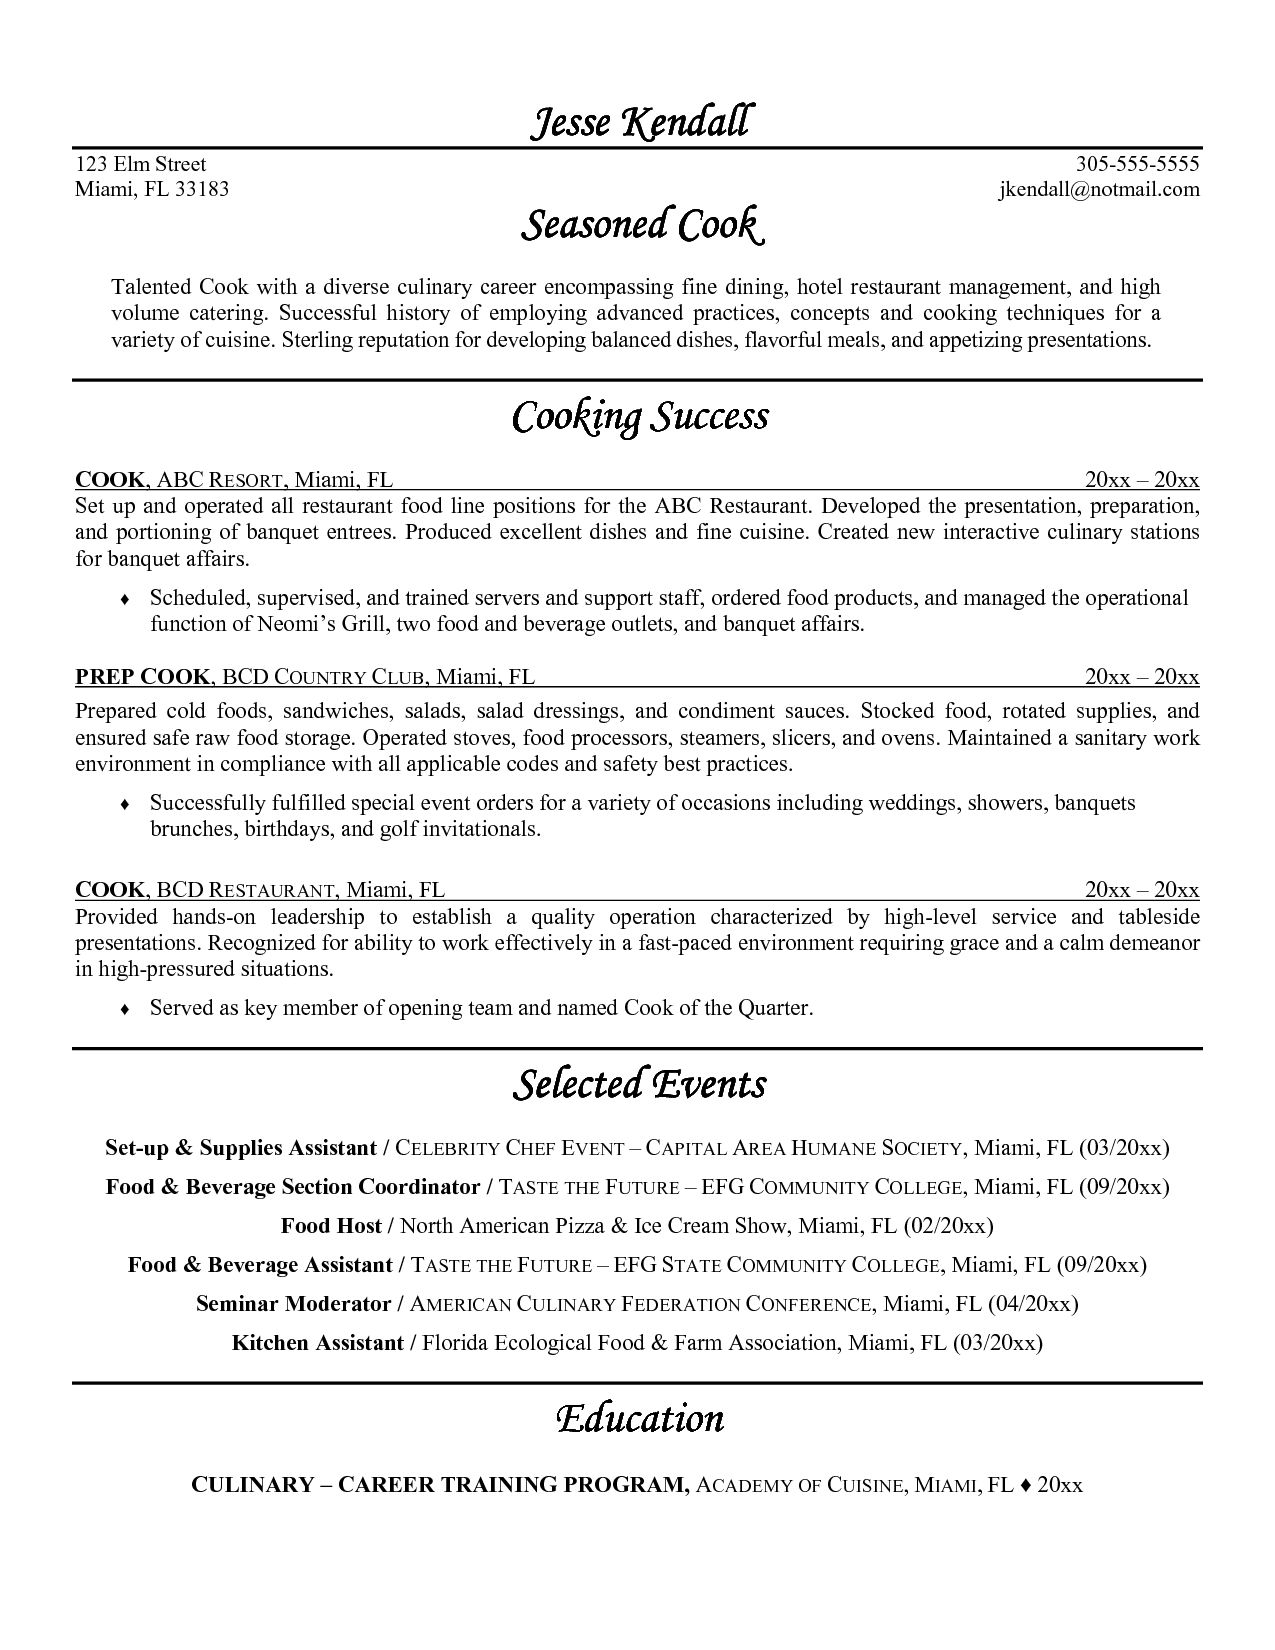 Sample Resume For Cook Position Head Chef Resume Samples Hospitality Templates Free Sample Format .